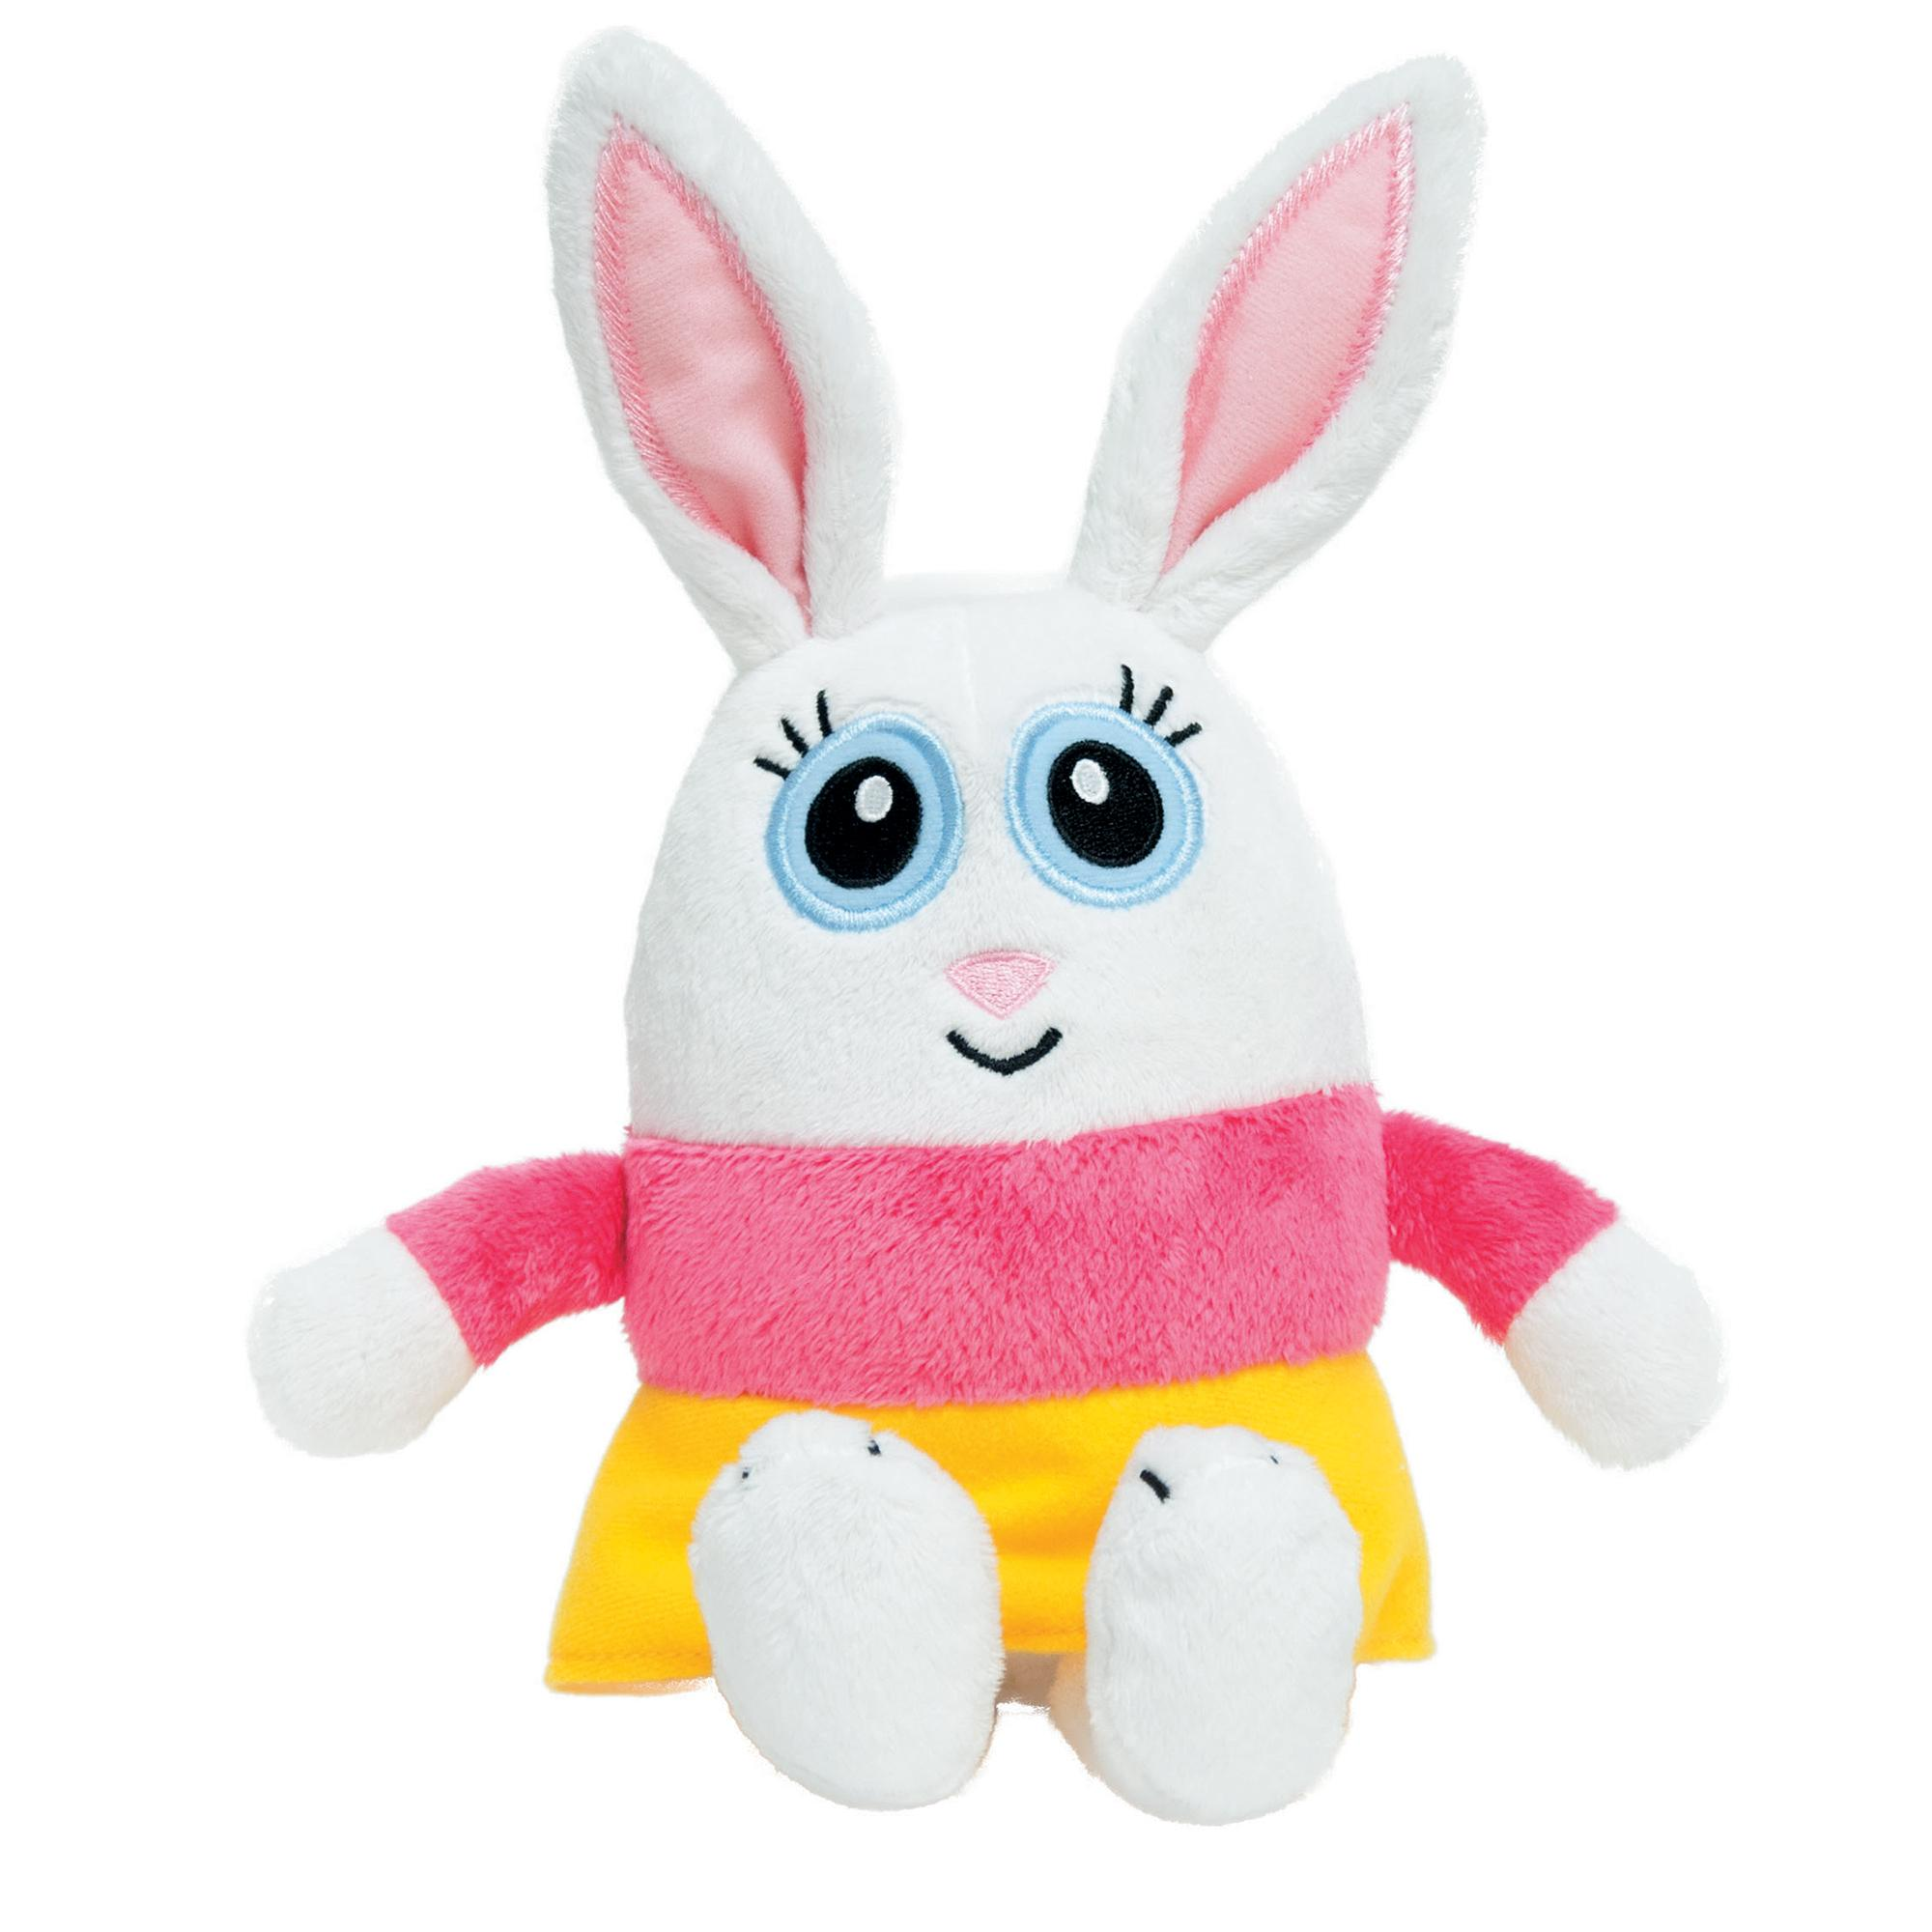 Baby Genius Rosie Soft Stuffed Plush Toy by Manhattan Toy